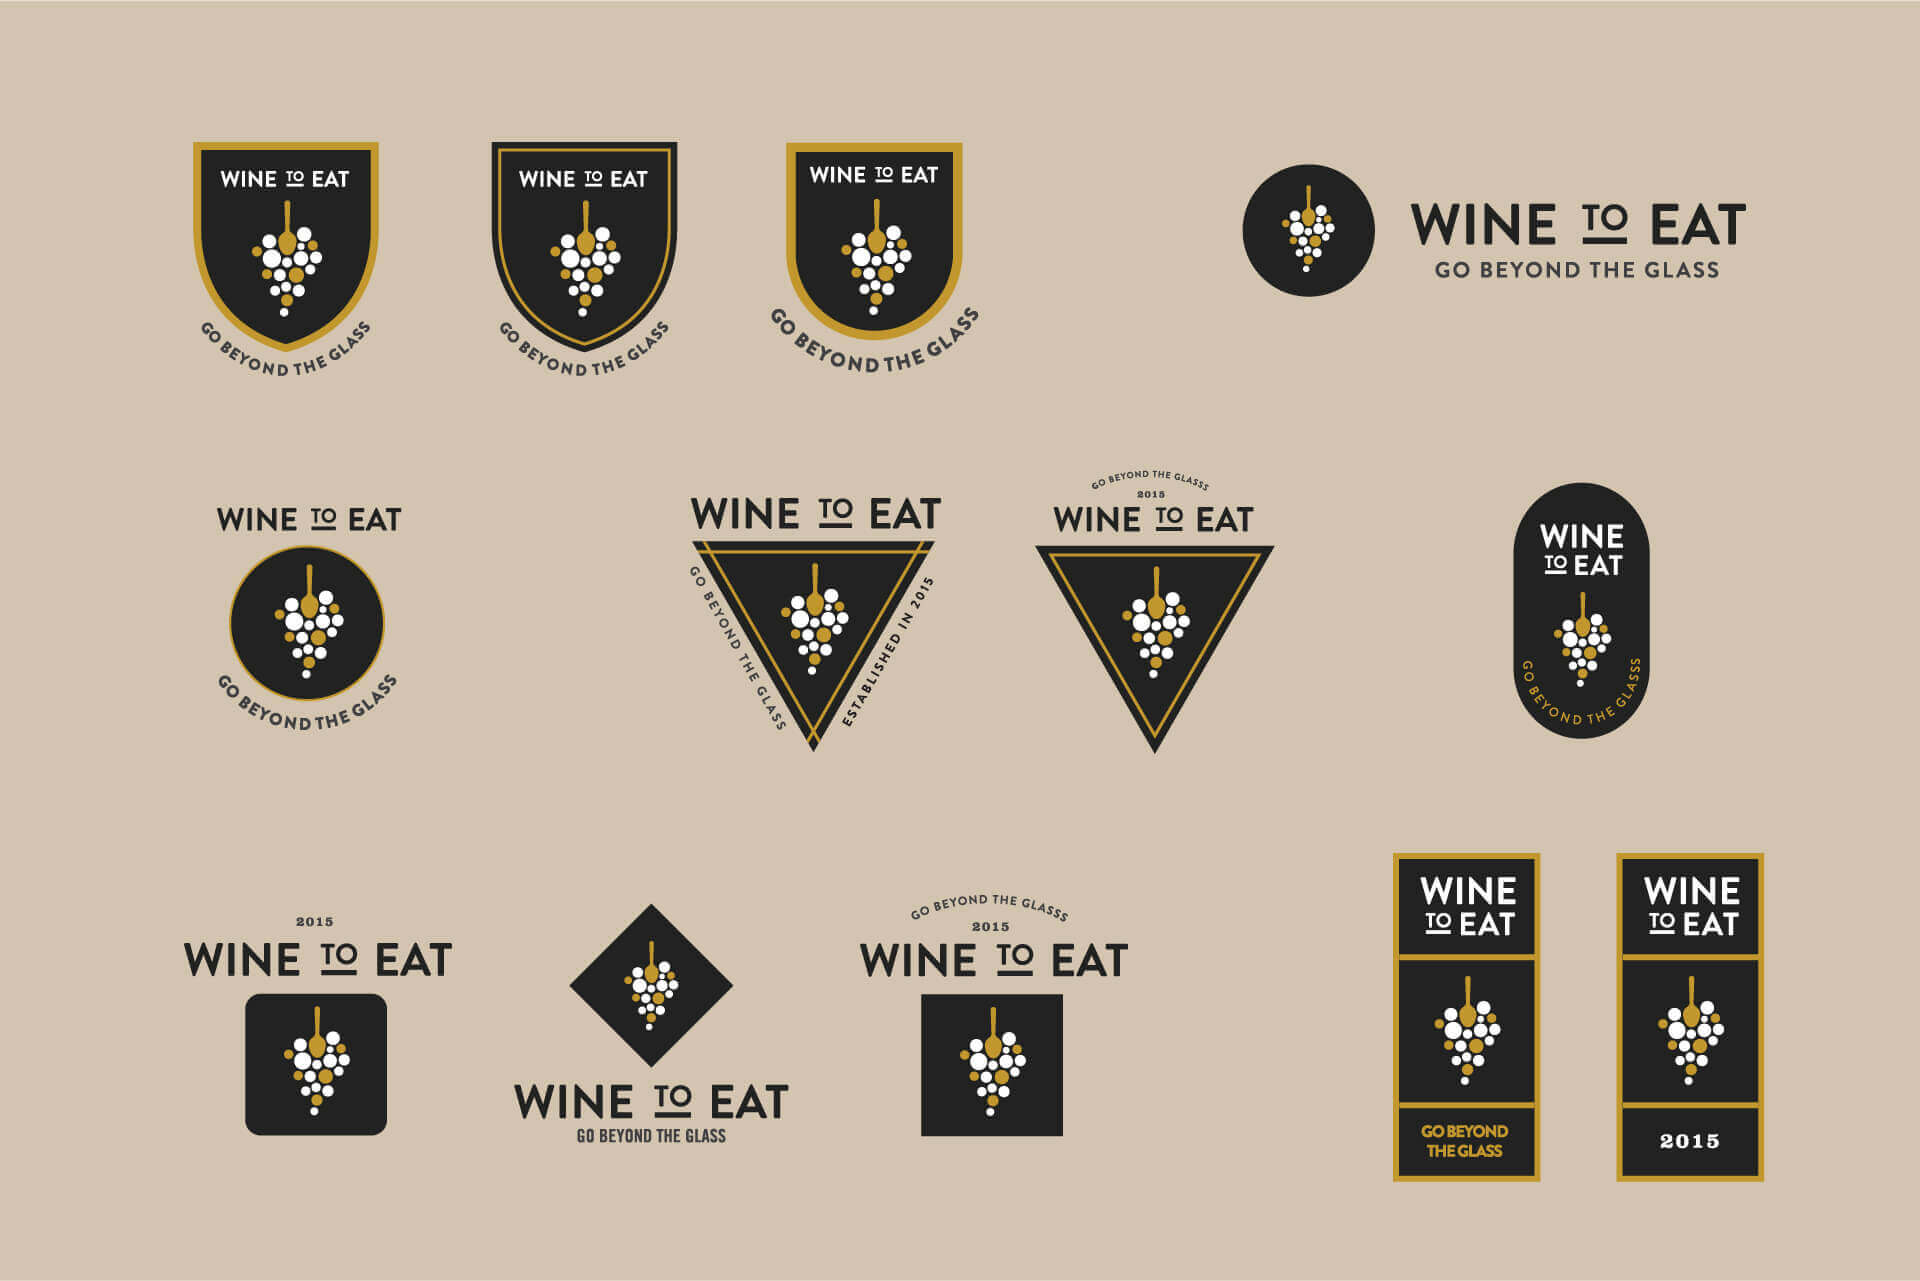 WineToEat_Branding_2